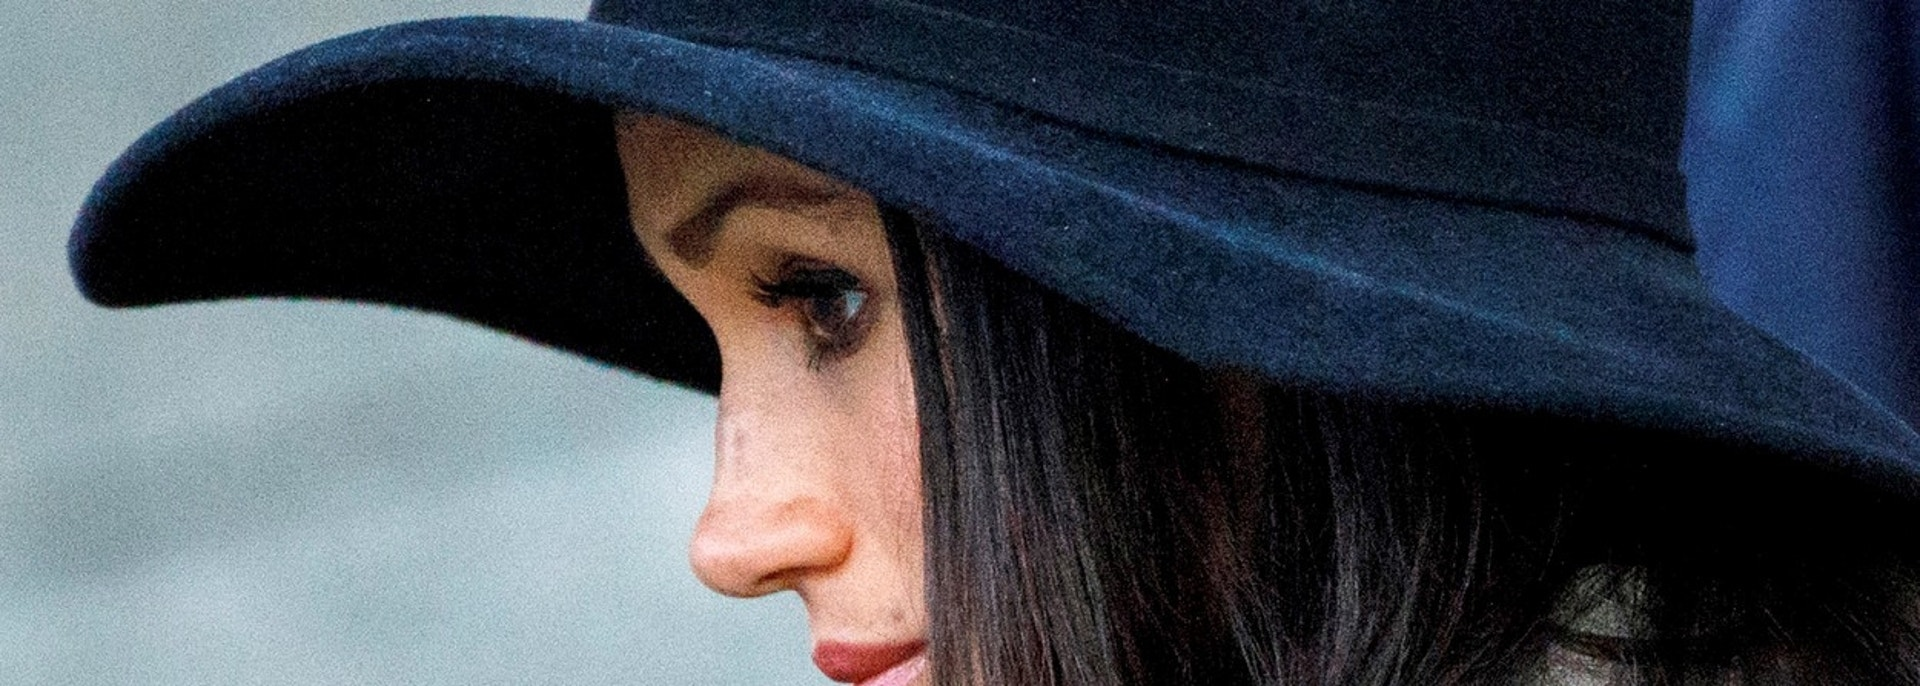 Meghan Markle, the fiancee of Britain's Prince Harry, attends the Dawn Service at Wellington Arch to commemorate Anzac Day in London, Britain, April 25, 2018. Tolga Akmen/Pool via Reuters - RC1F6CA51F40